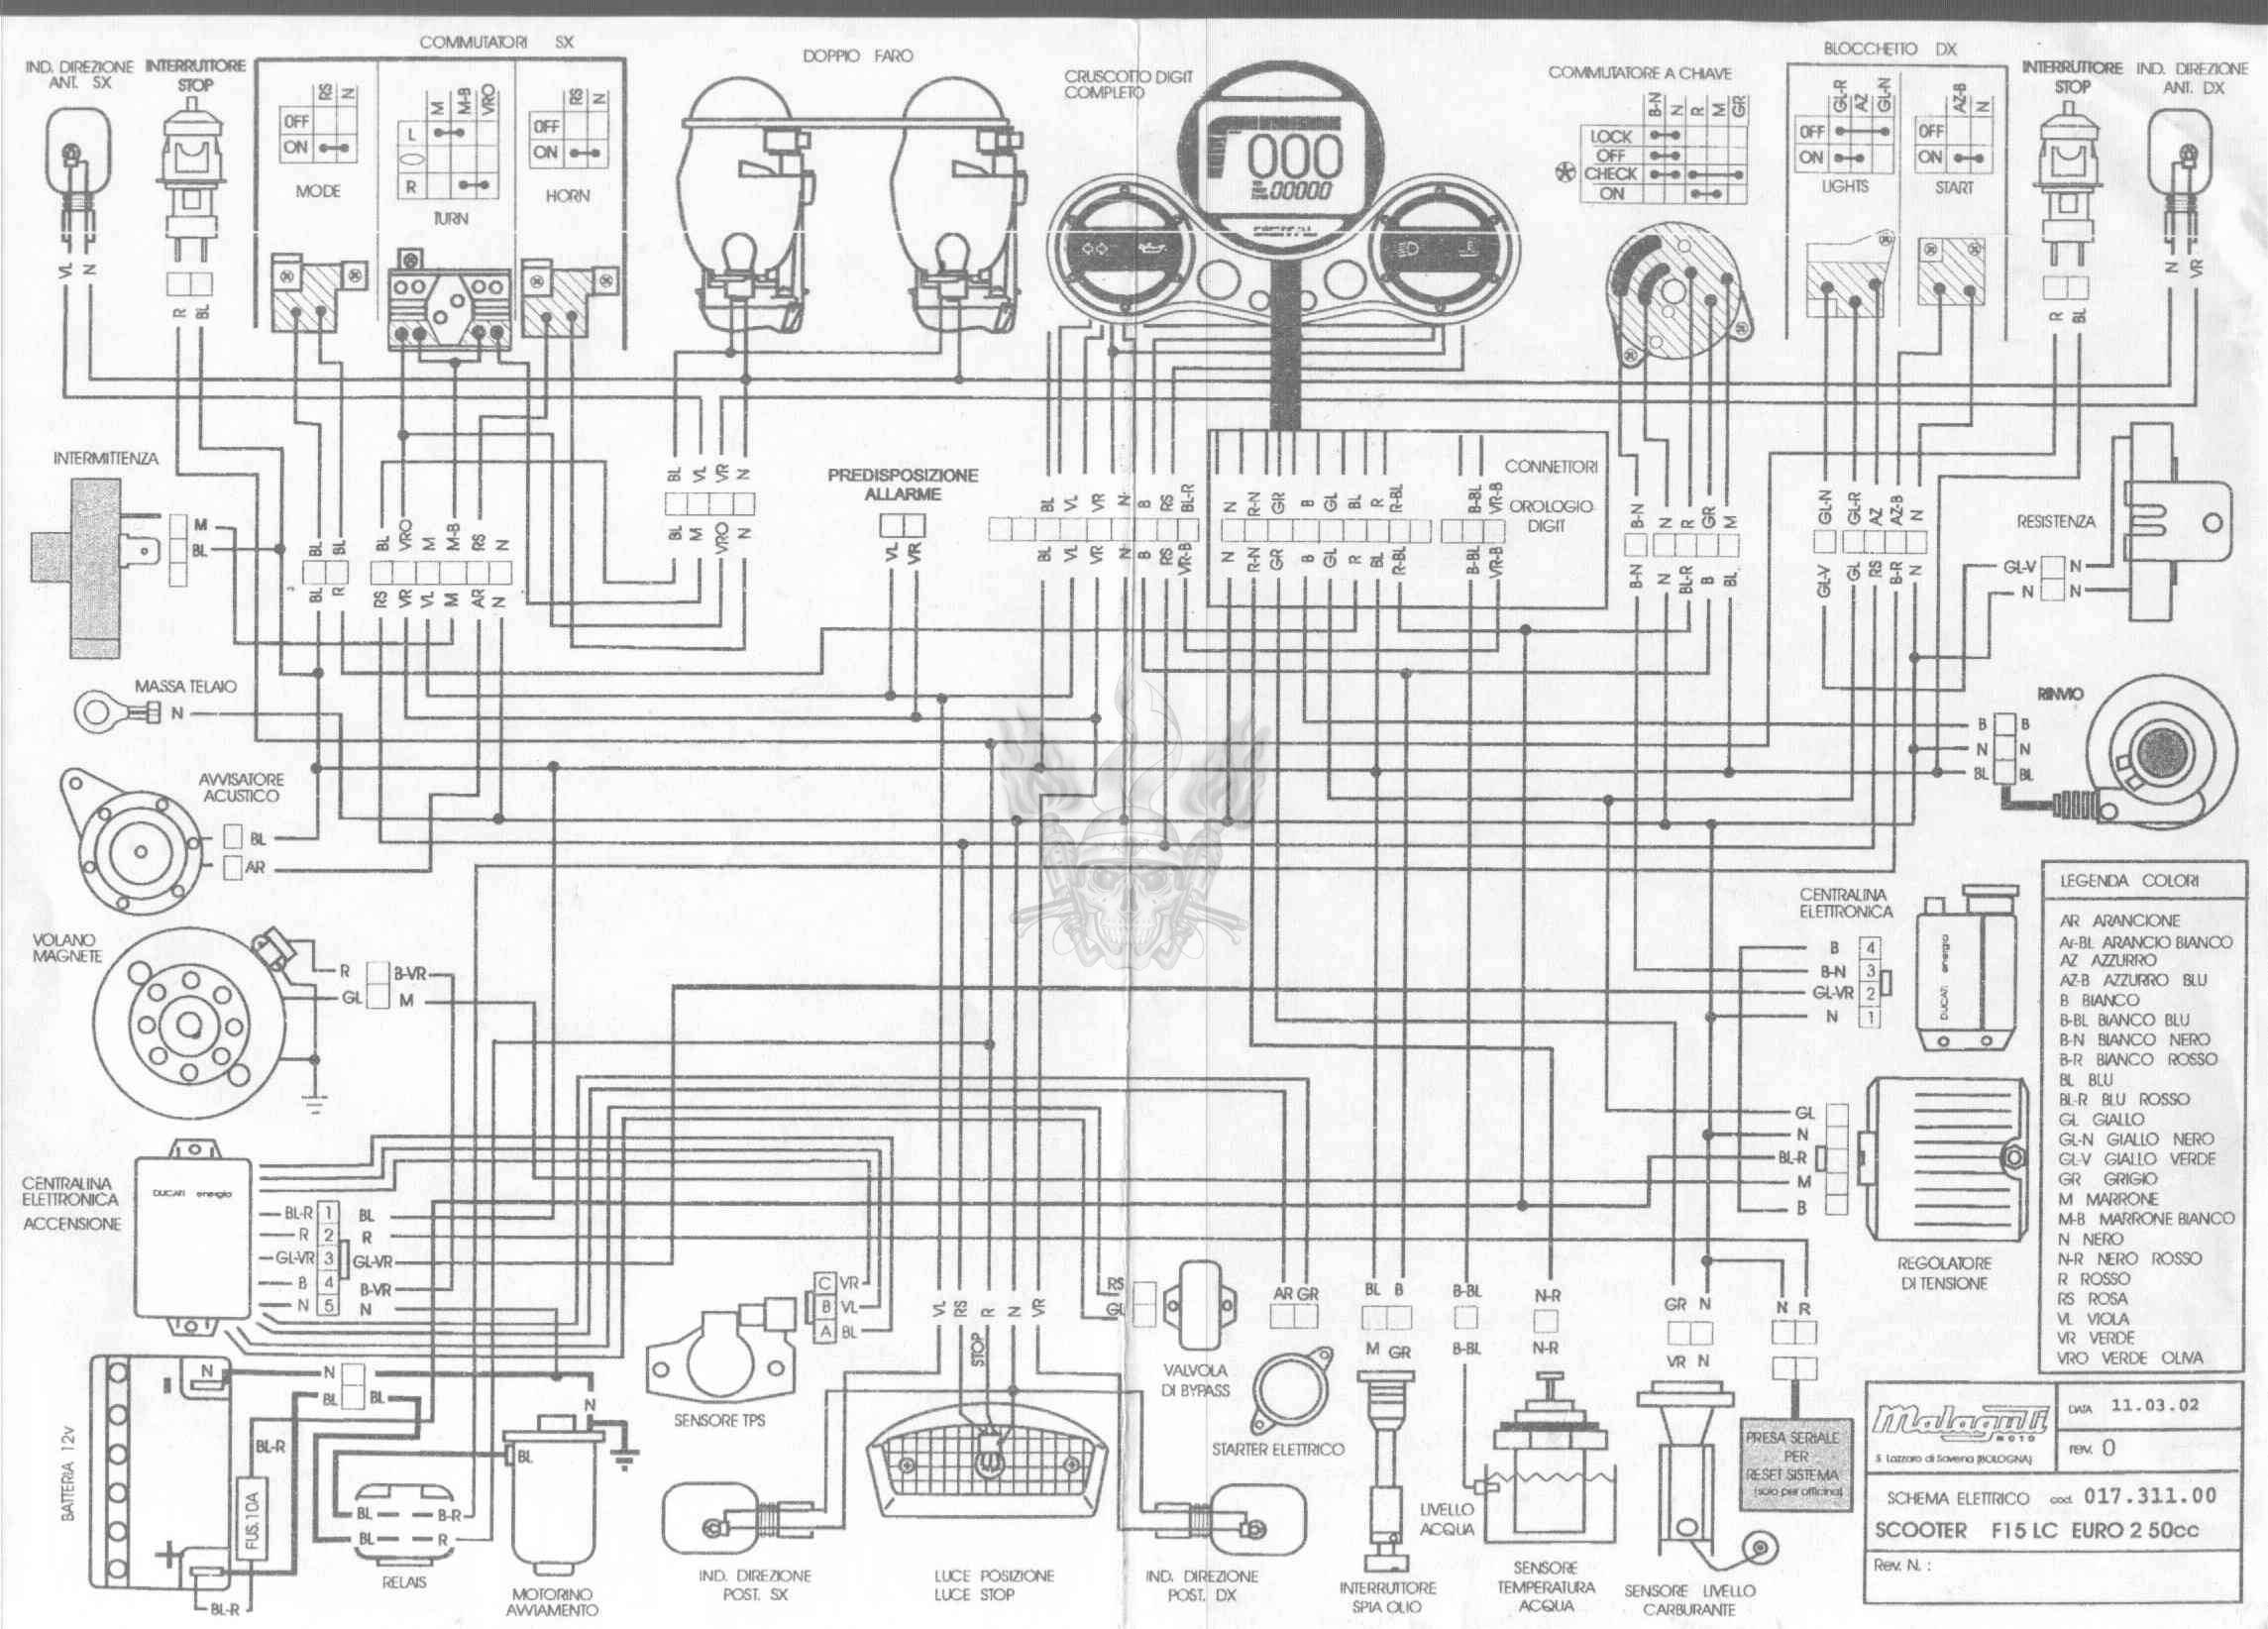 Electric Scooter Battery Wiring Diagram Free Image Wiring Diagram